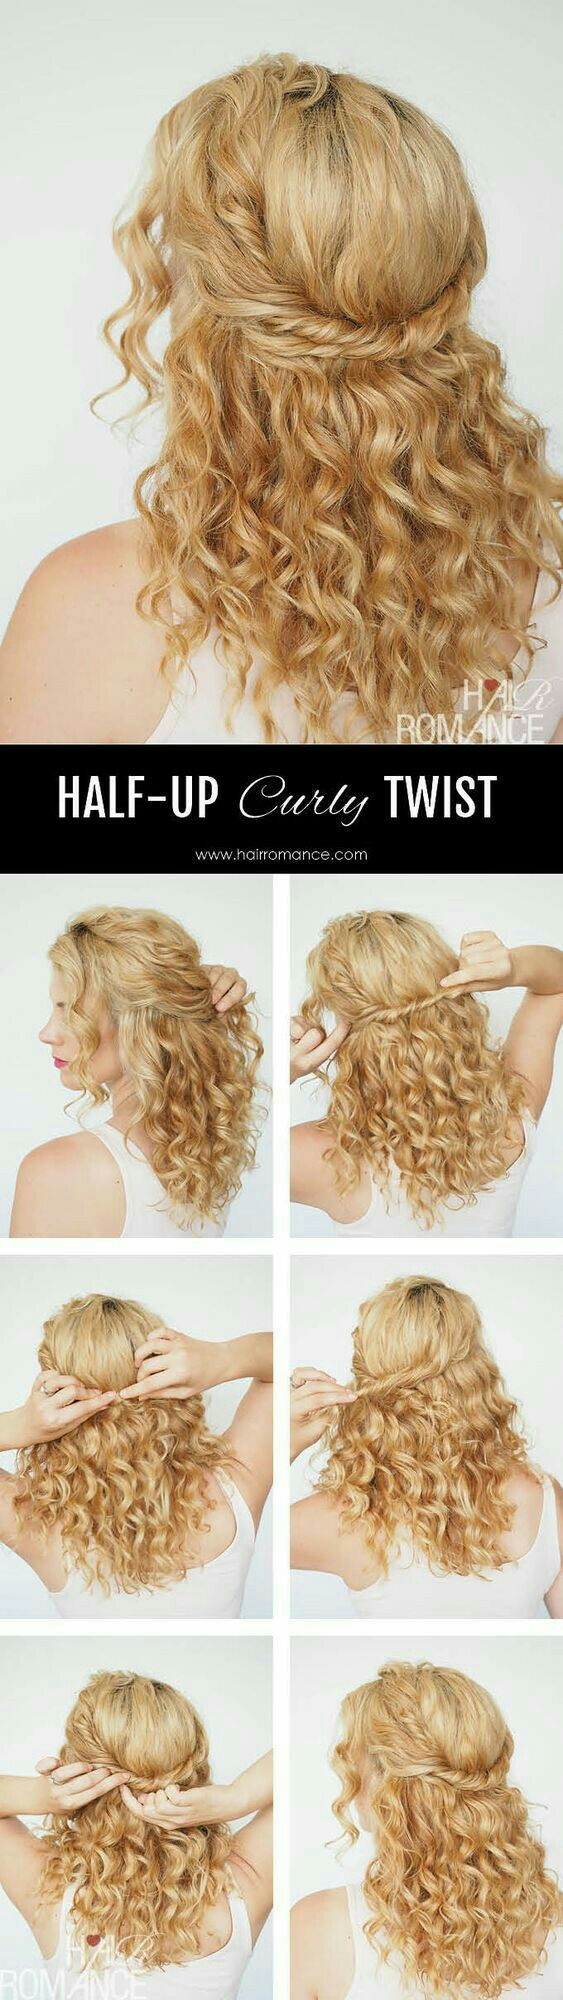 Pin by jaime hackett on curly hair pinterest